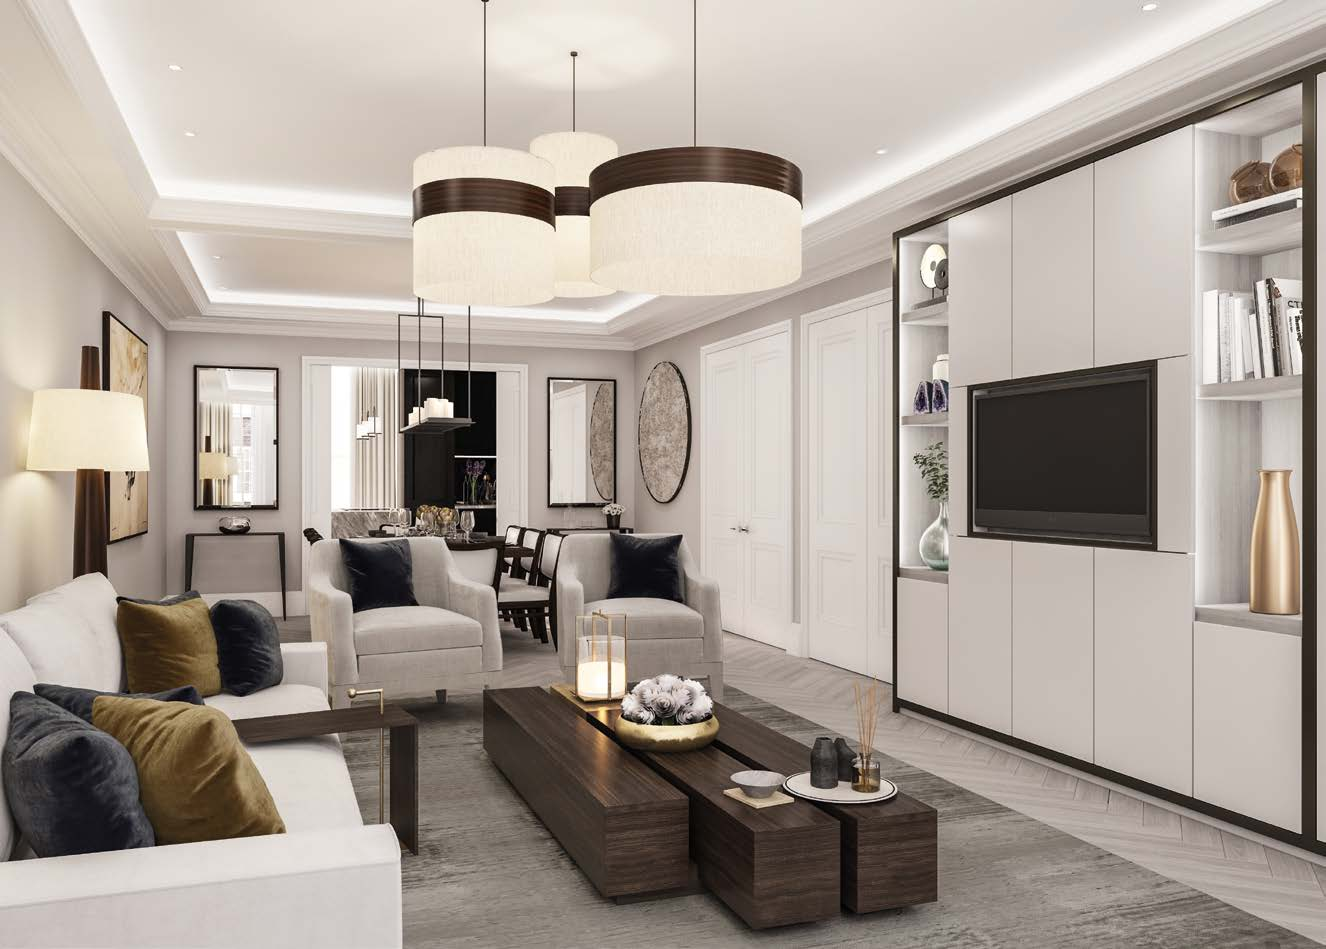 35 Old Queen Street at Westminster, London. Luxury apartments for Sale in London_31